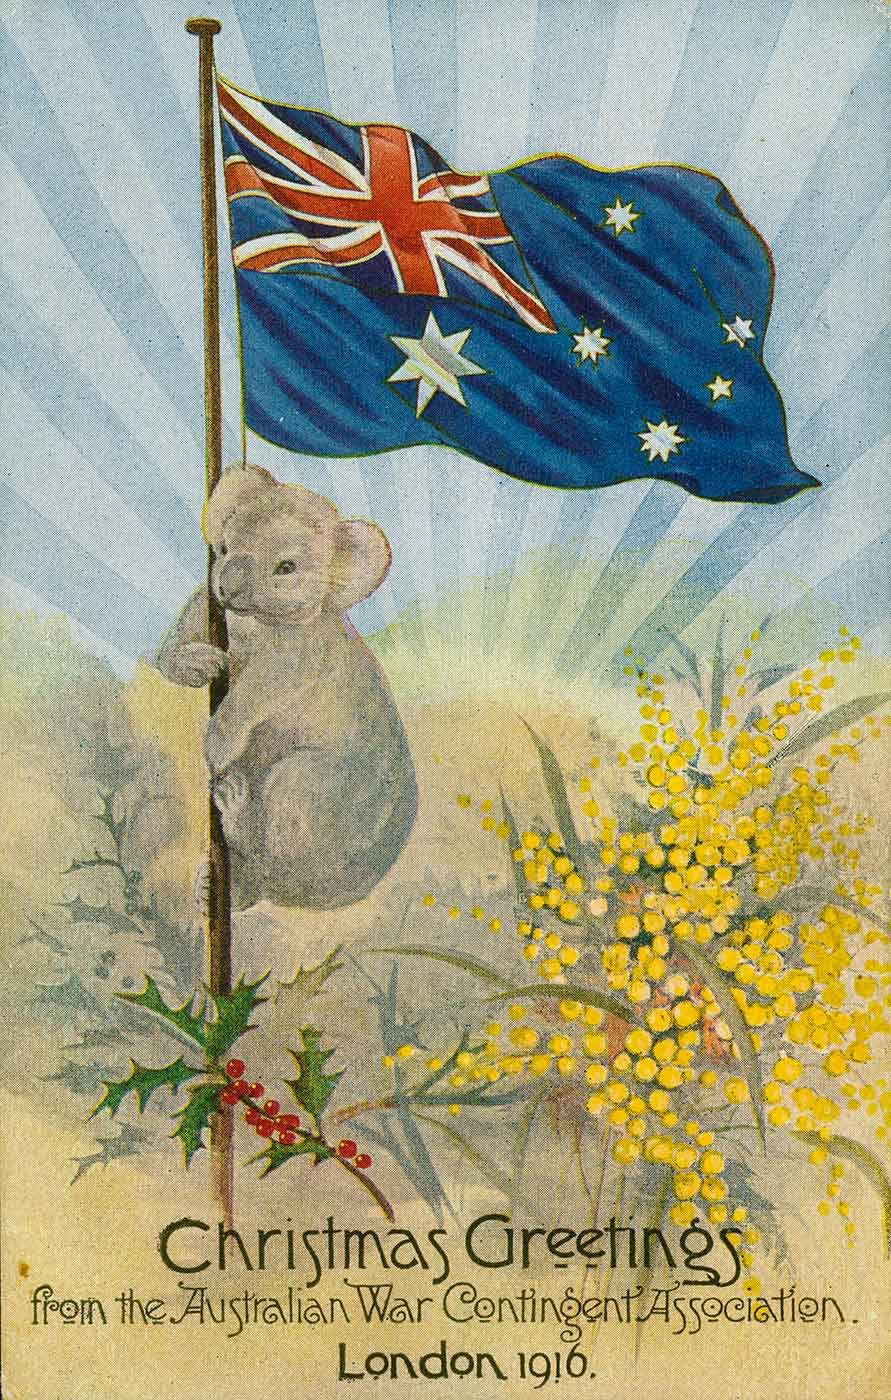 Postcard with an image of a koala climbing a flag pole which has the Australian flag at the top. There is a sprig of holly and a spray of wattle at the base of the flag pole. Text across the bottom reads 'Christmas greetings from the Australian War Contingent Association., London 1916.'  - click to view larger image